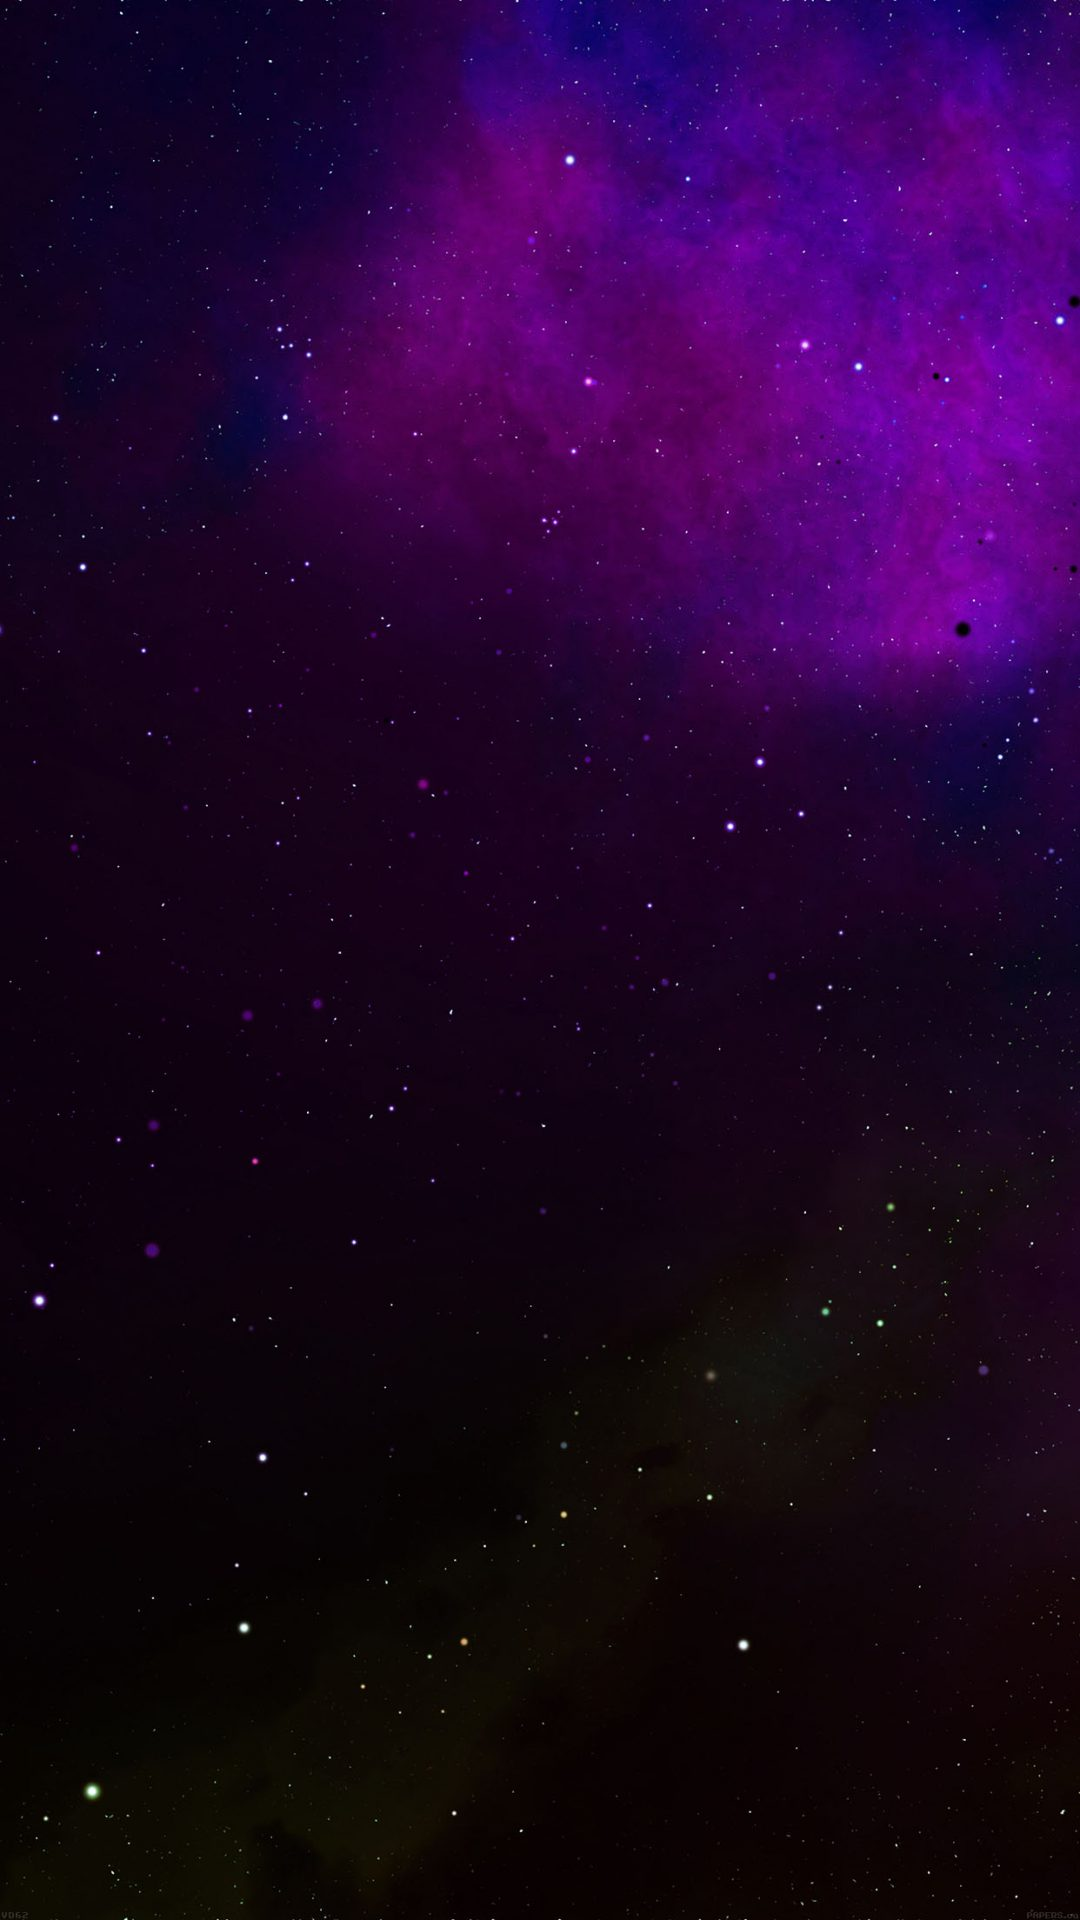 Frontier Galaxy Space Colorful Star Nebula